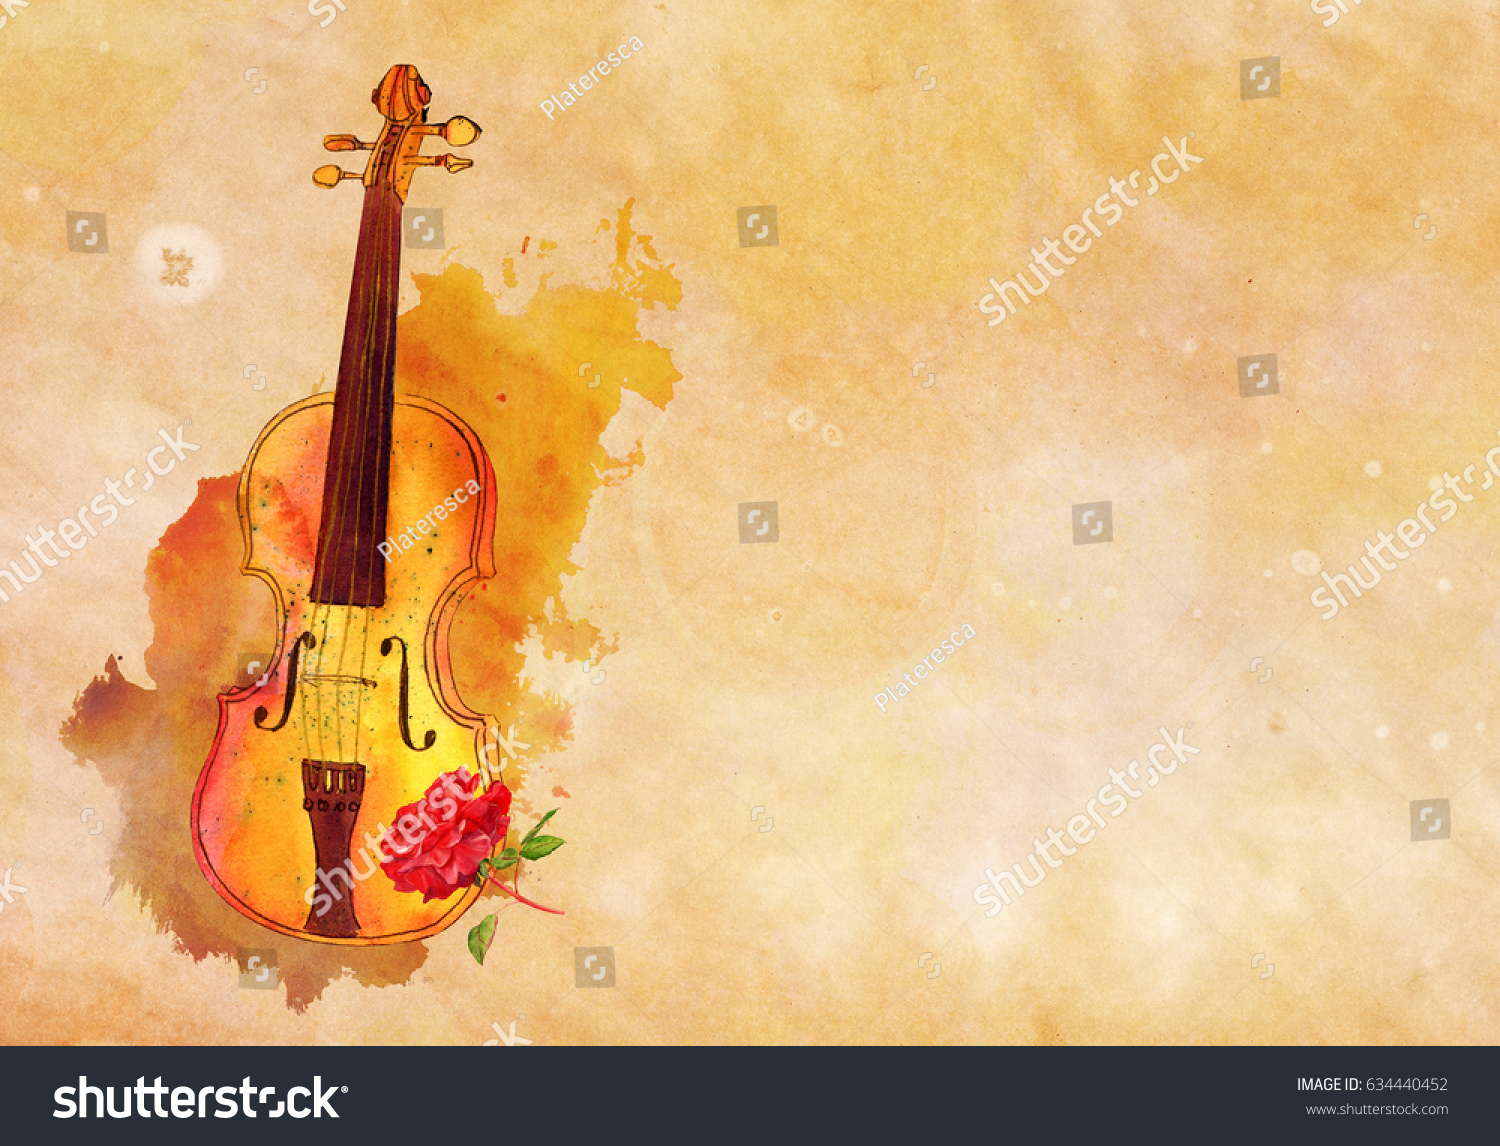 Watercolour Ink Drawing Violin Red Rose Stock Illustration 634440452 ...